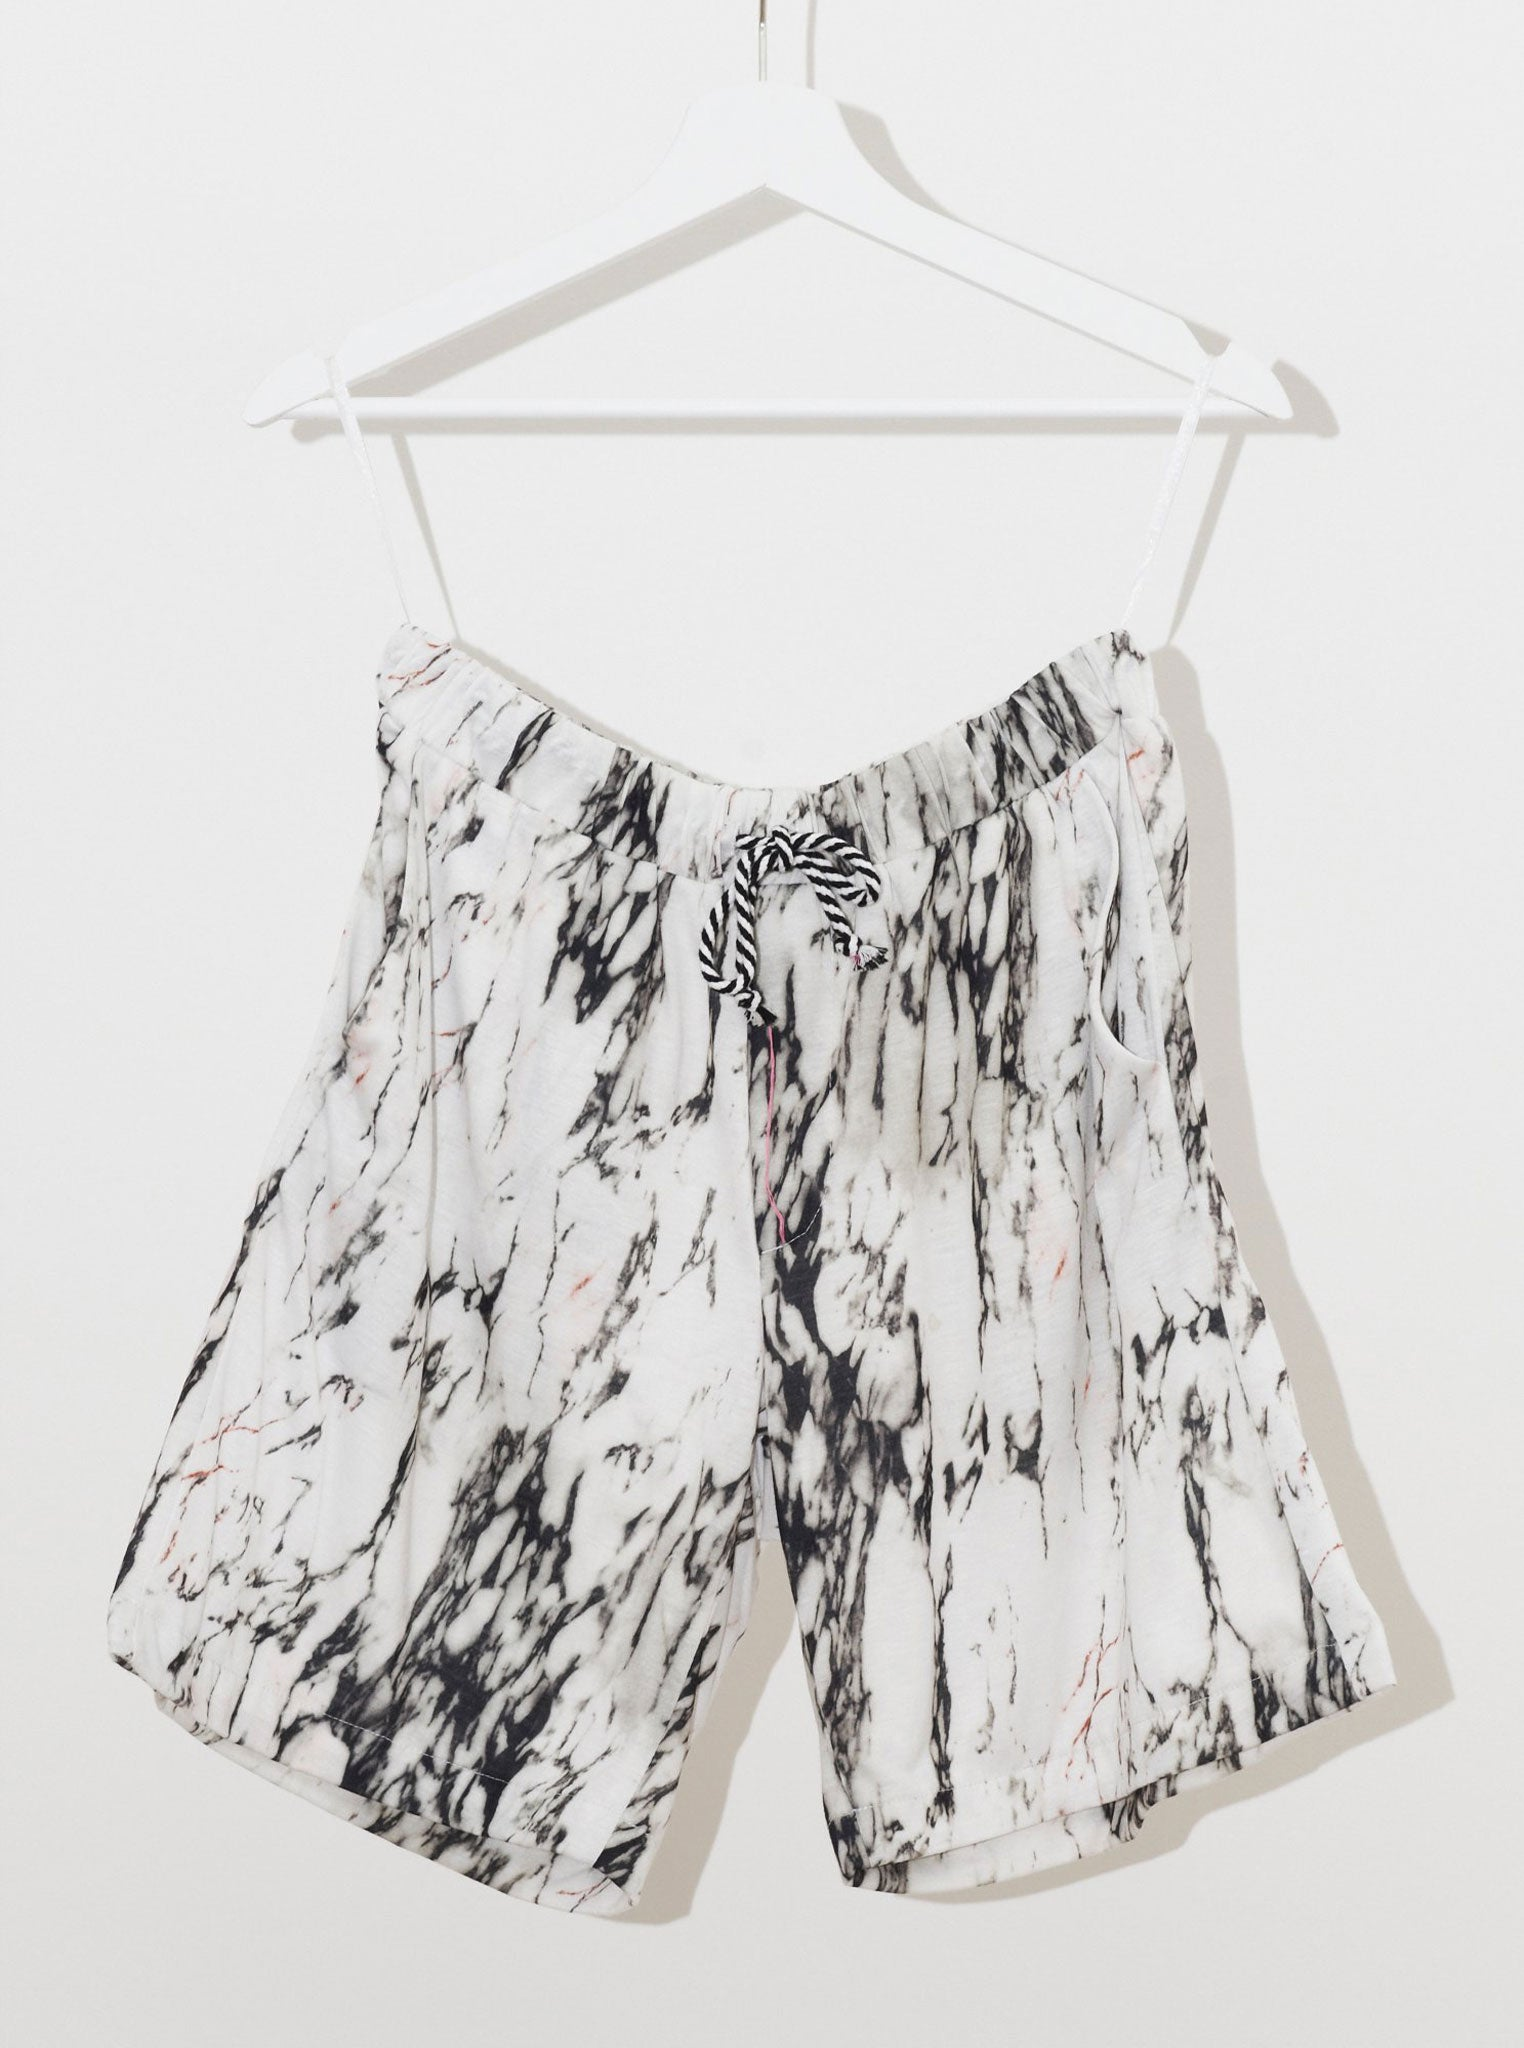 Vinti Andrews Marble Shorts